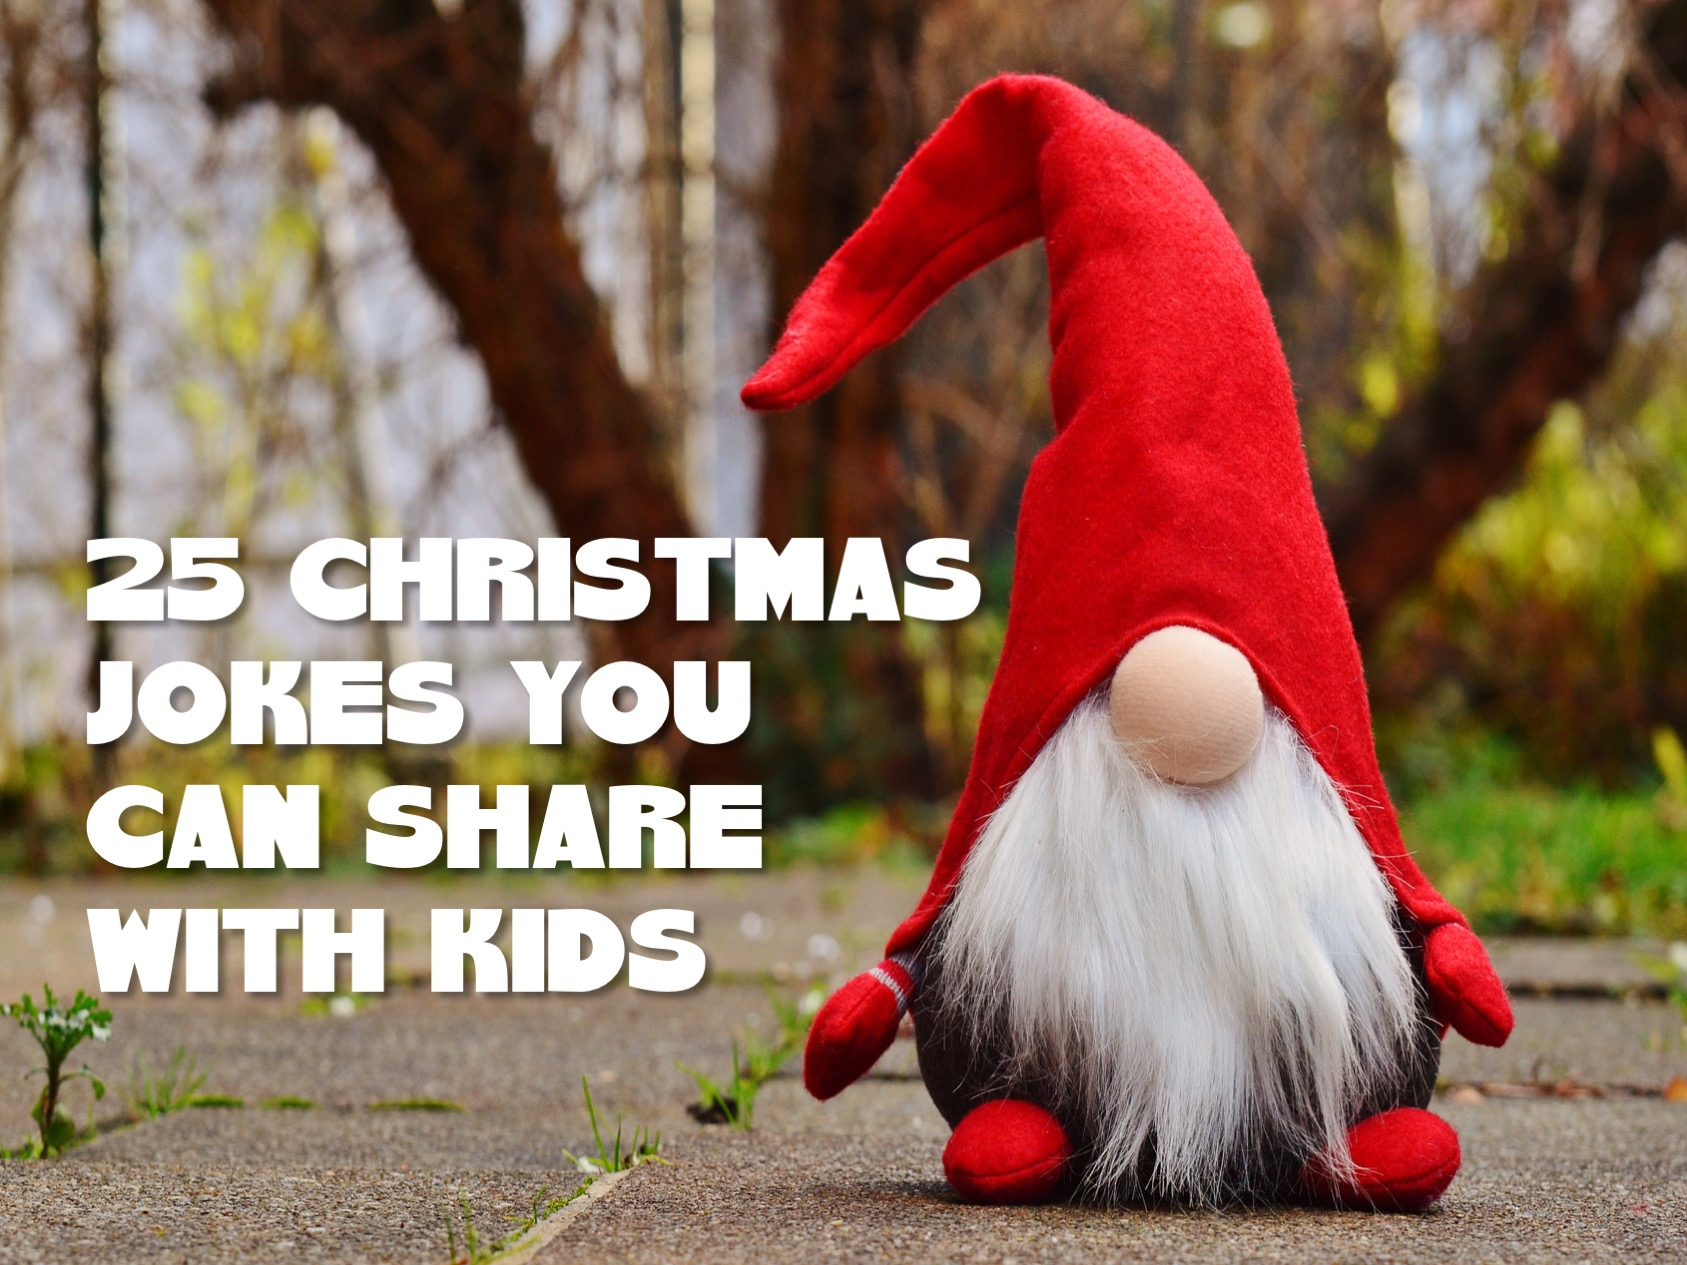 Christmas Jokes Kids.25 Christmas Jokes You Can Tell Kids Relevant Children S